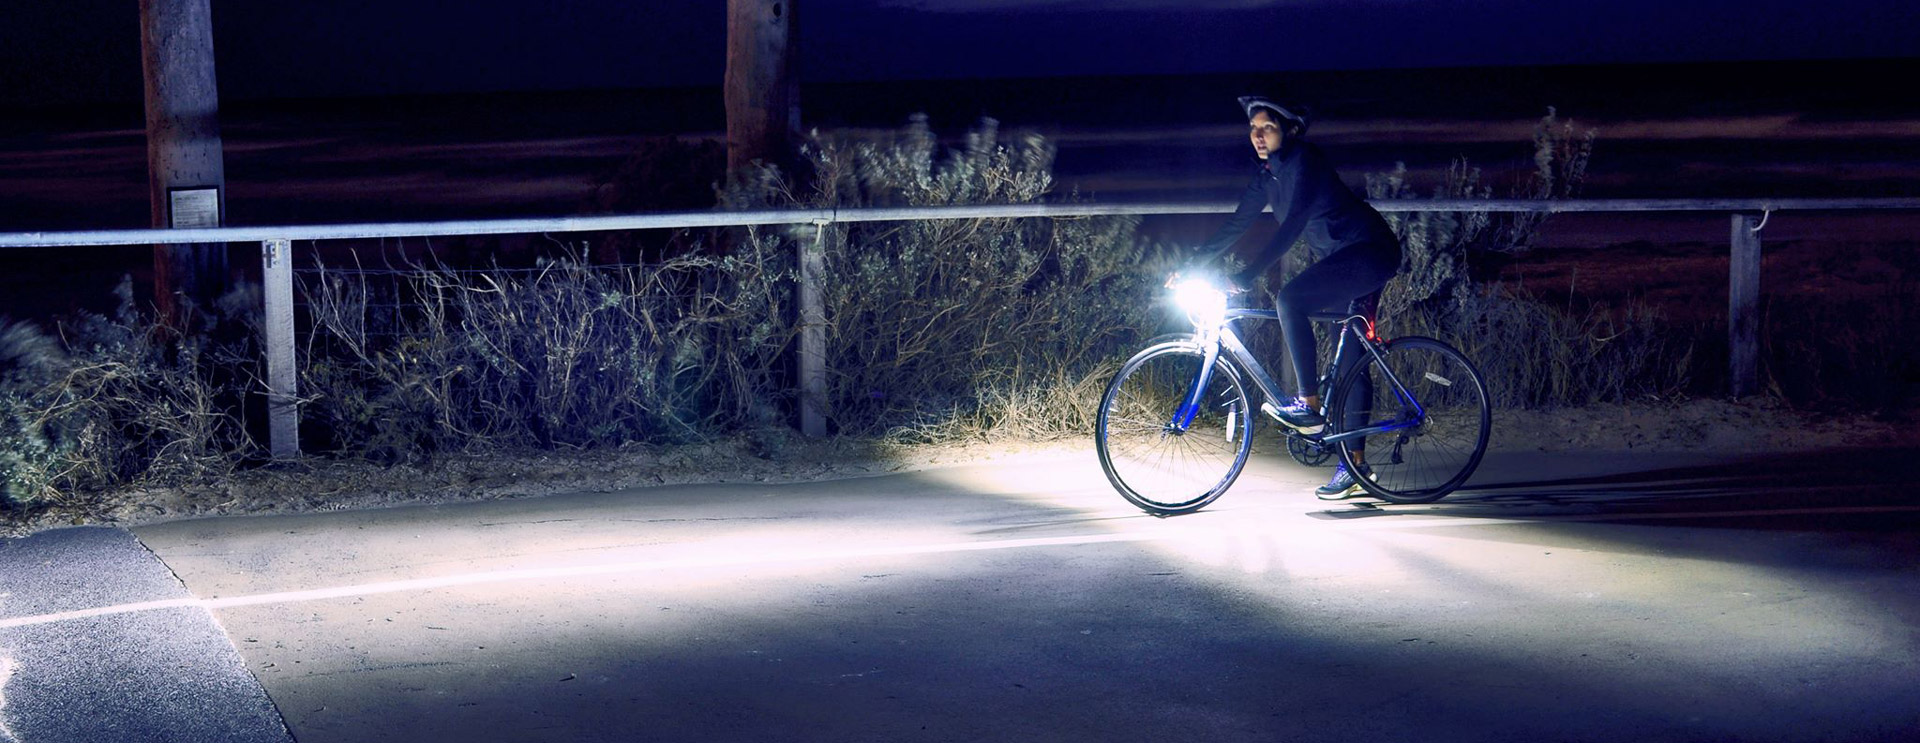 ding_phare_velo_cote_led_home